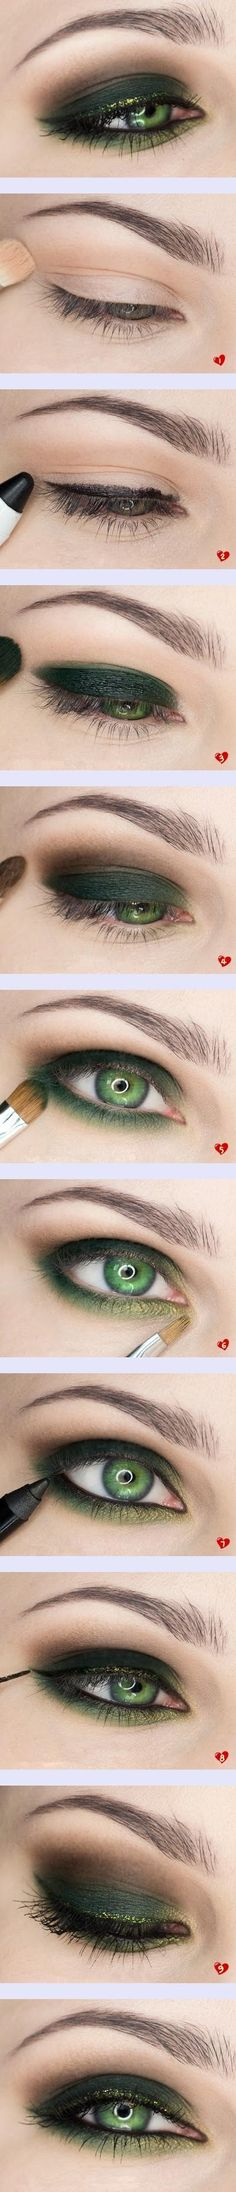 Cute green makeup. I would maybe leave out the glitter on the top lid (I can't believe I said that!)